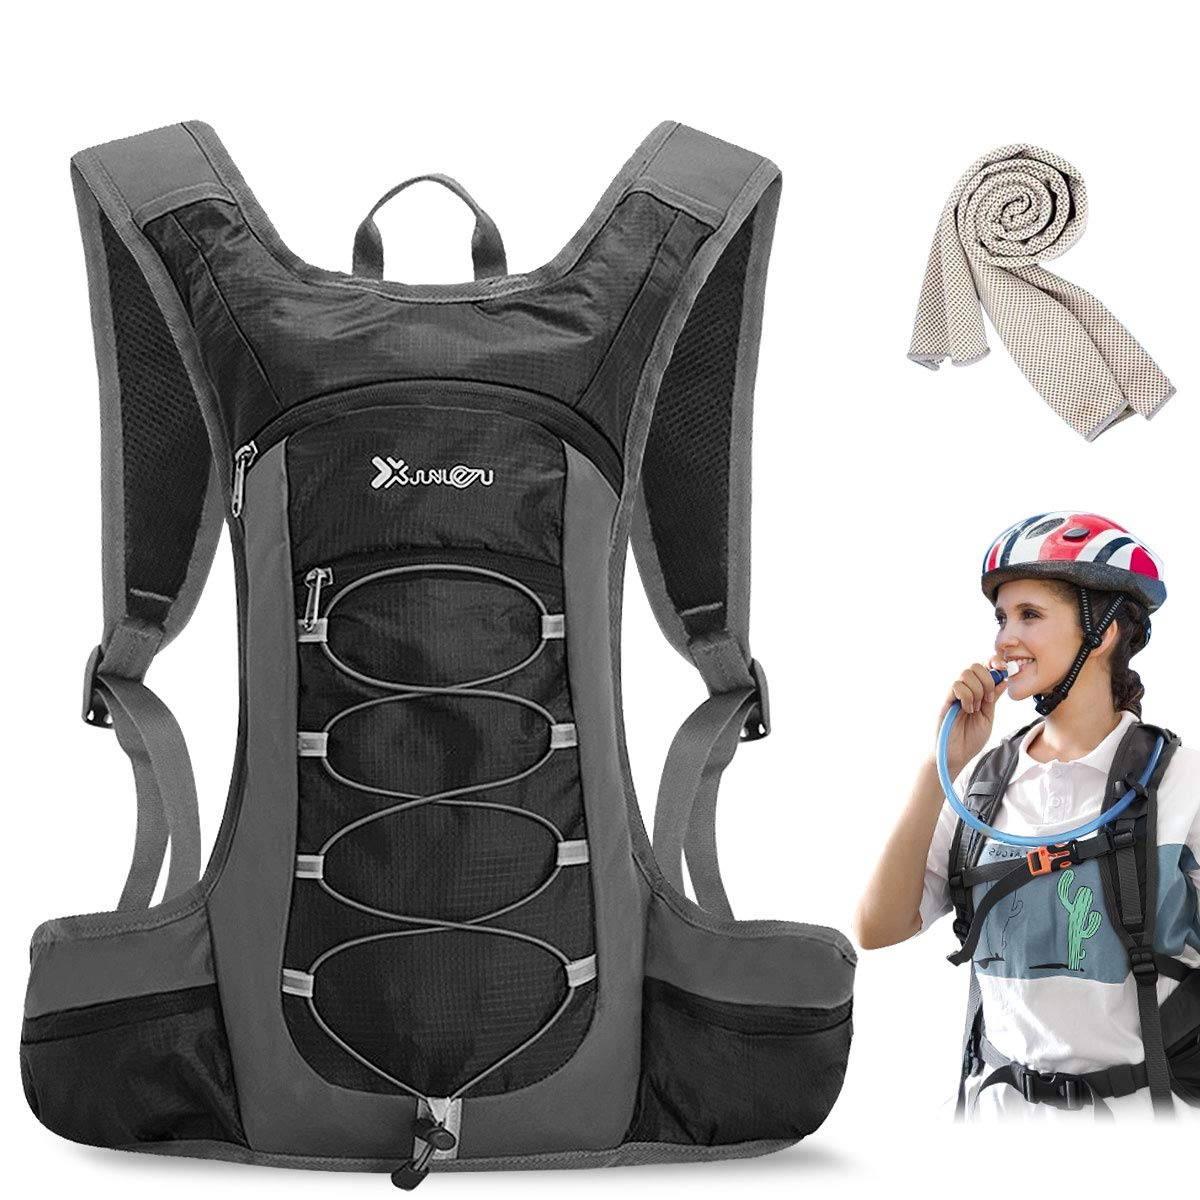 GOLOLBA Hydration Pack,Insulated Hydration Backpack with 2L BPA Free Water Bladder and Storage for Backpacking, Hiking, Running, Cycling, and Climbing with Towel.